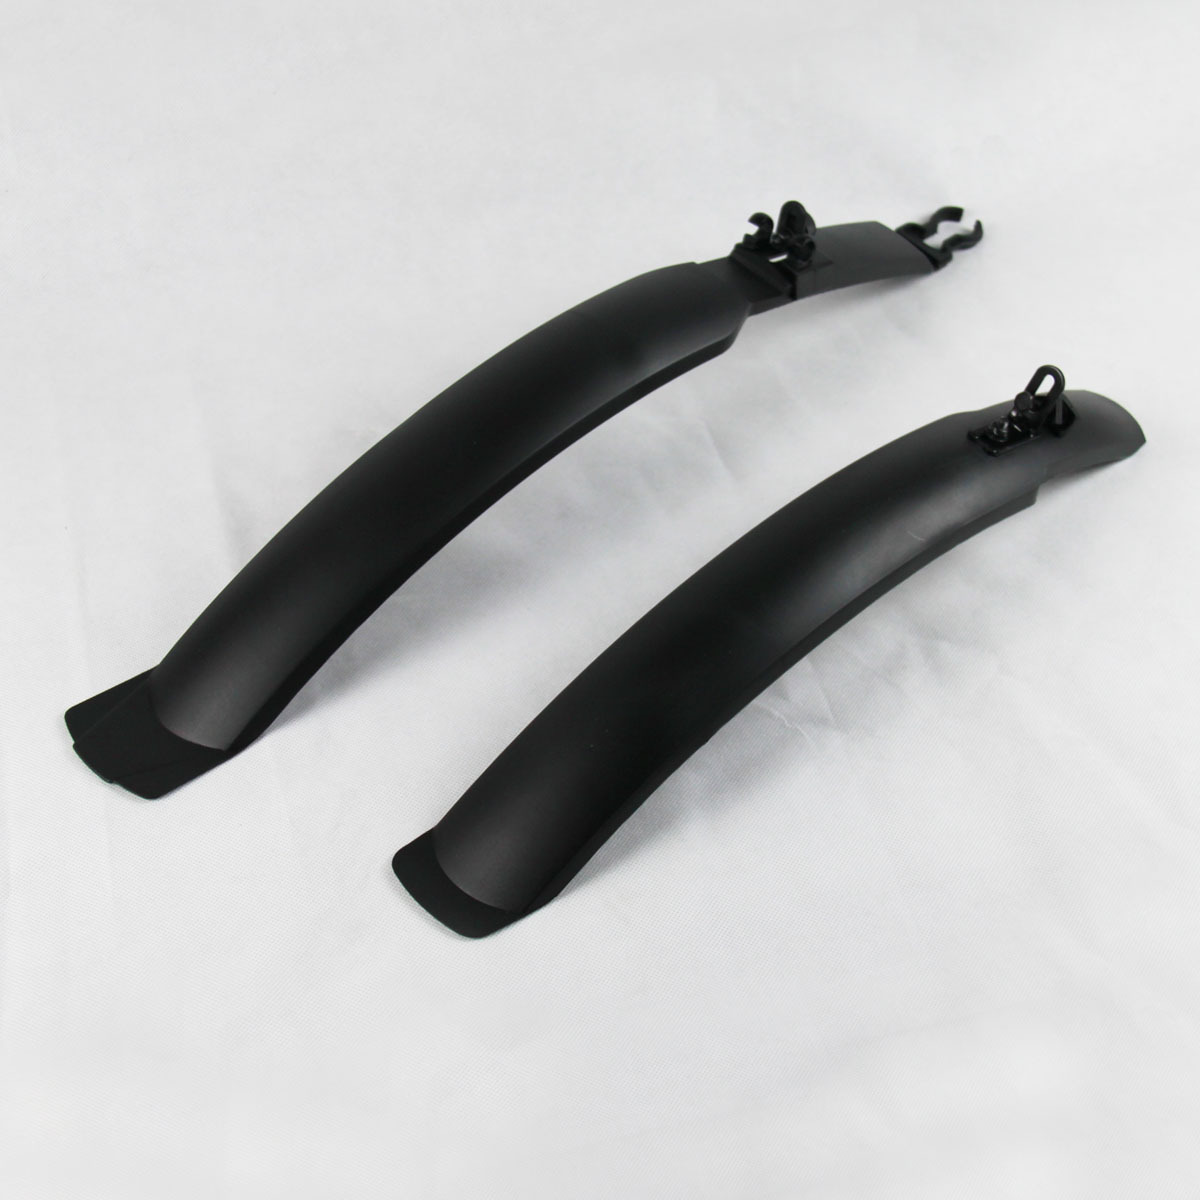 Acrono unbreakable bike fender long mud tile in addition to 26 inch mountain bike special riding equipment accessories